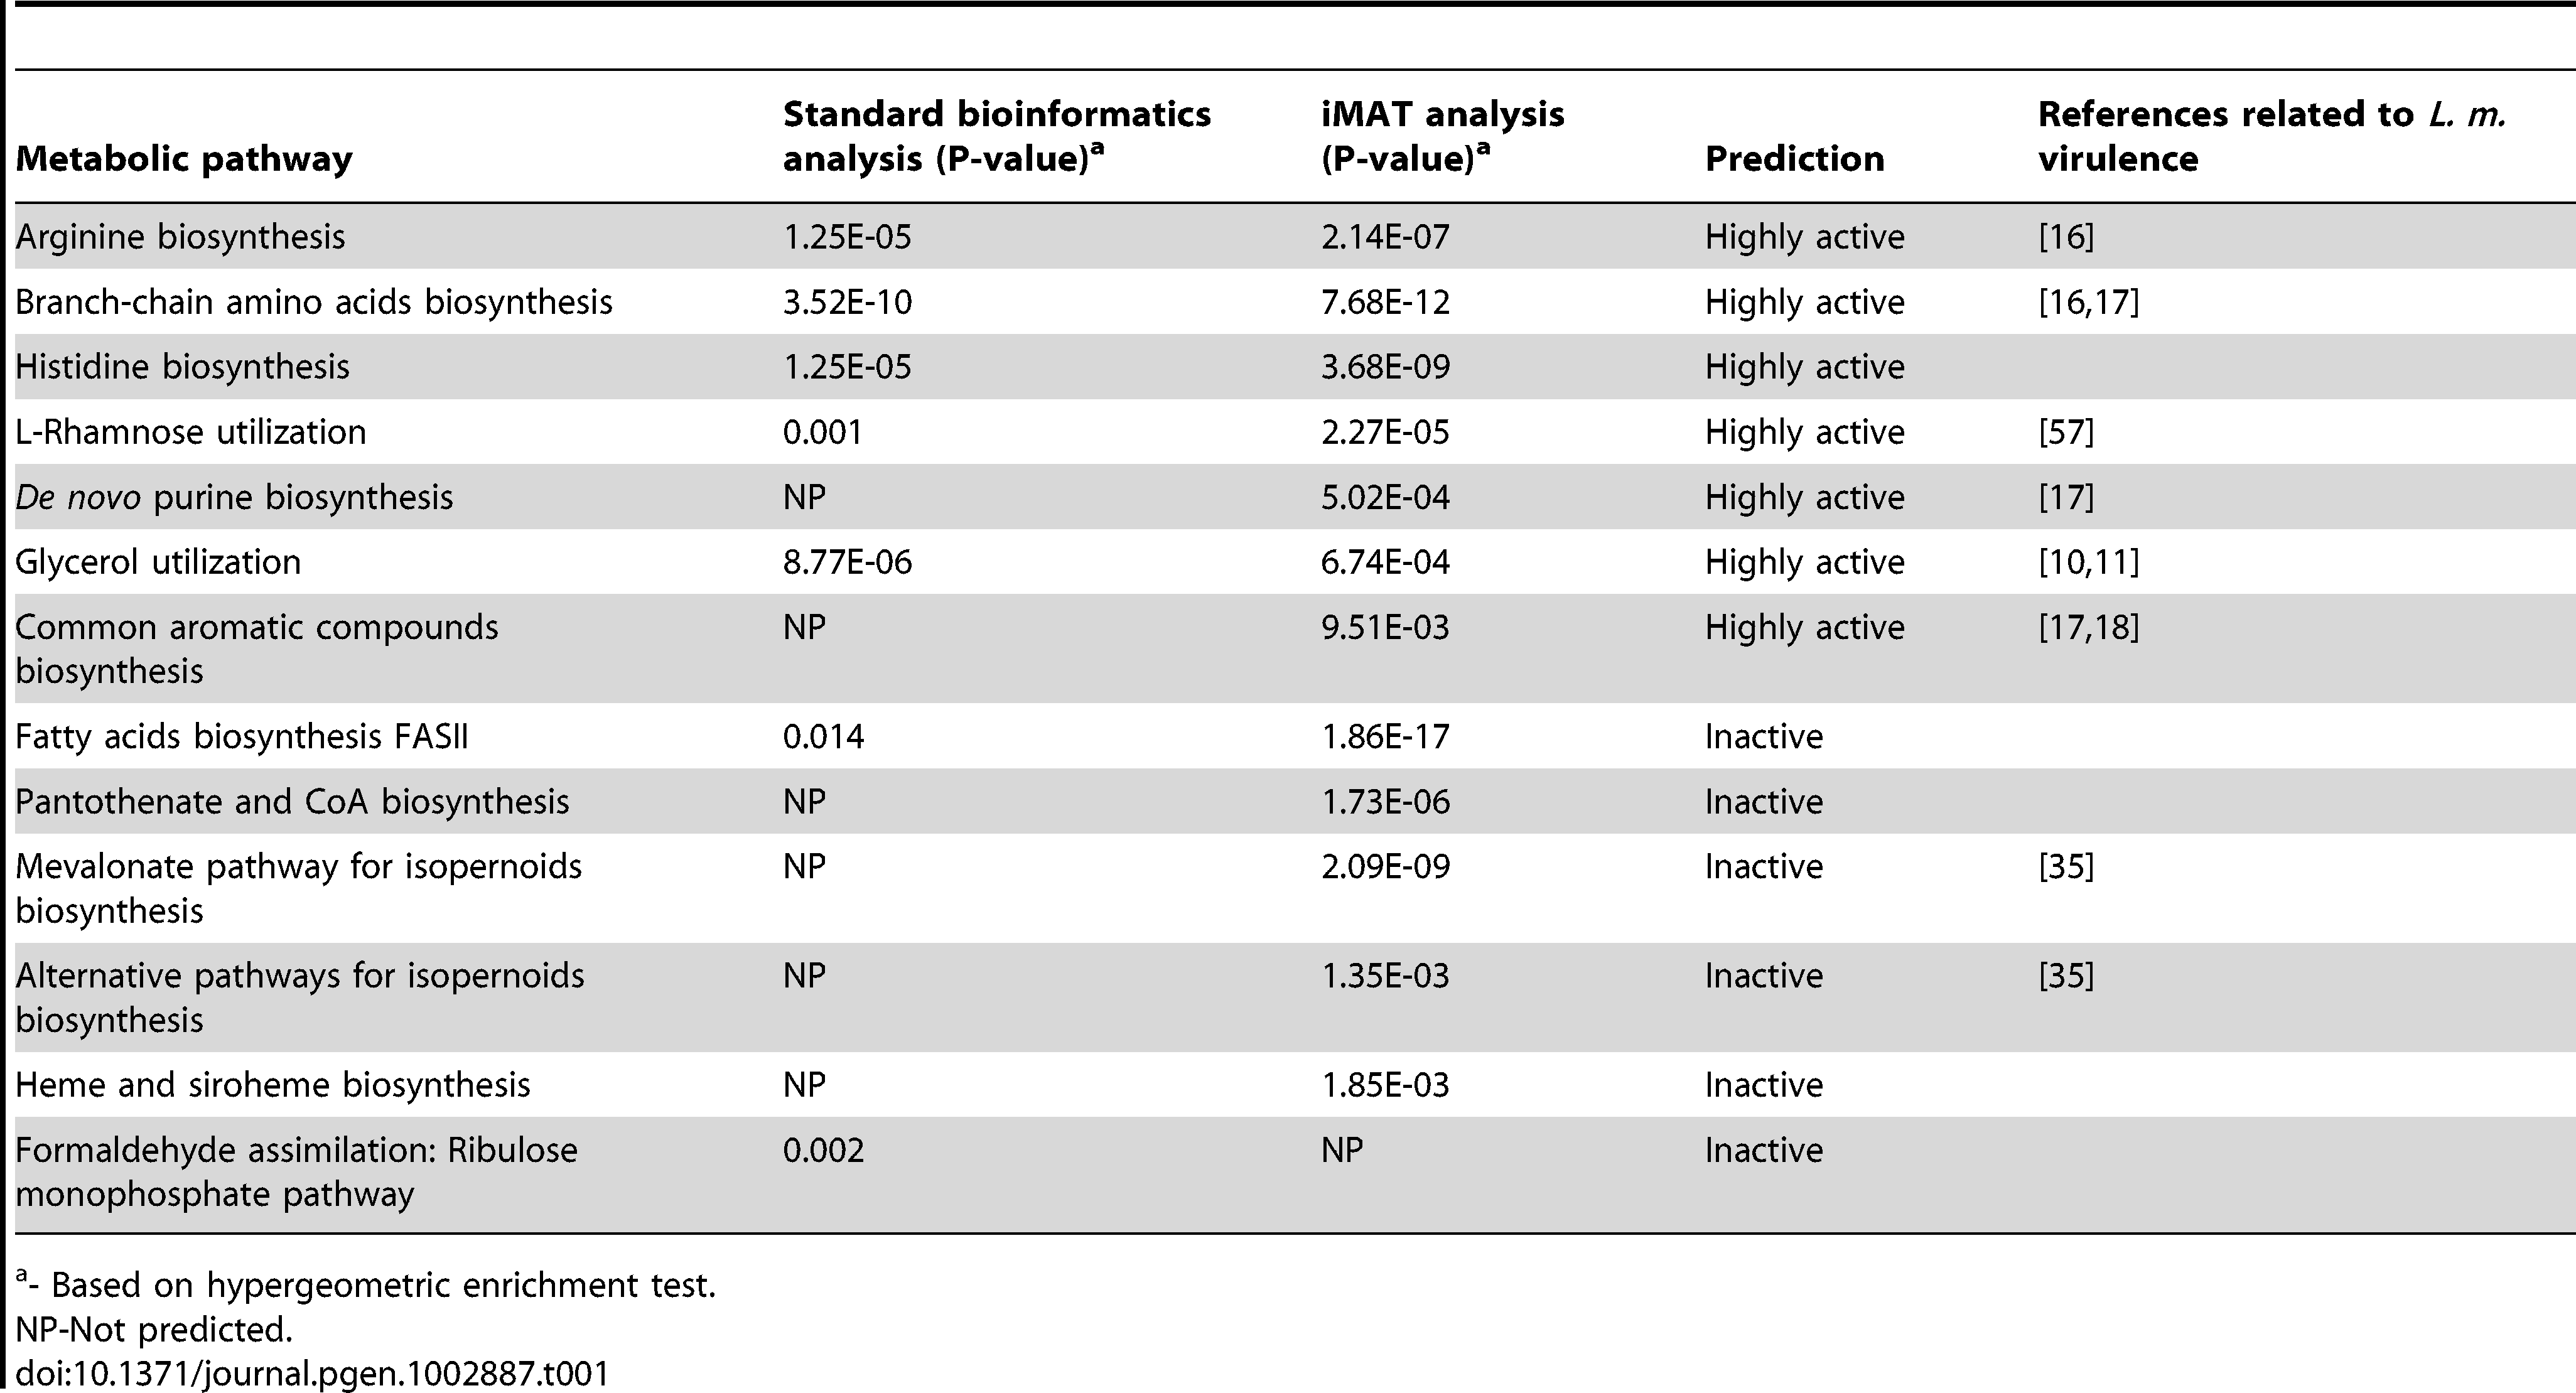 Metabolic pathways predicted to be differentially active during <i>L. monocytogenes</i> intracellular growth by standard bioinformatics analysis and iMAT analysis.